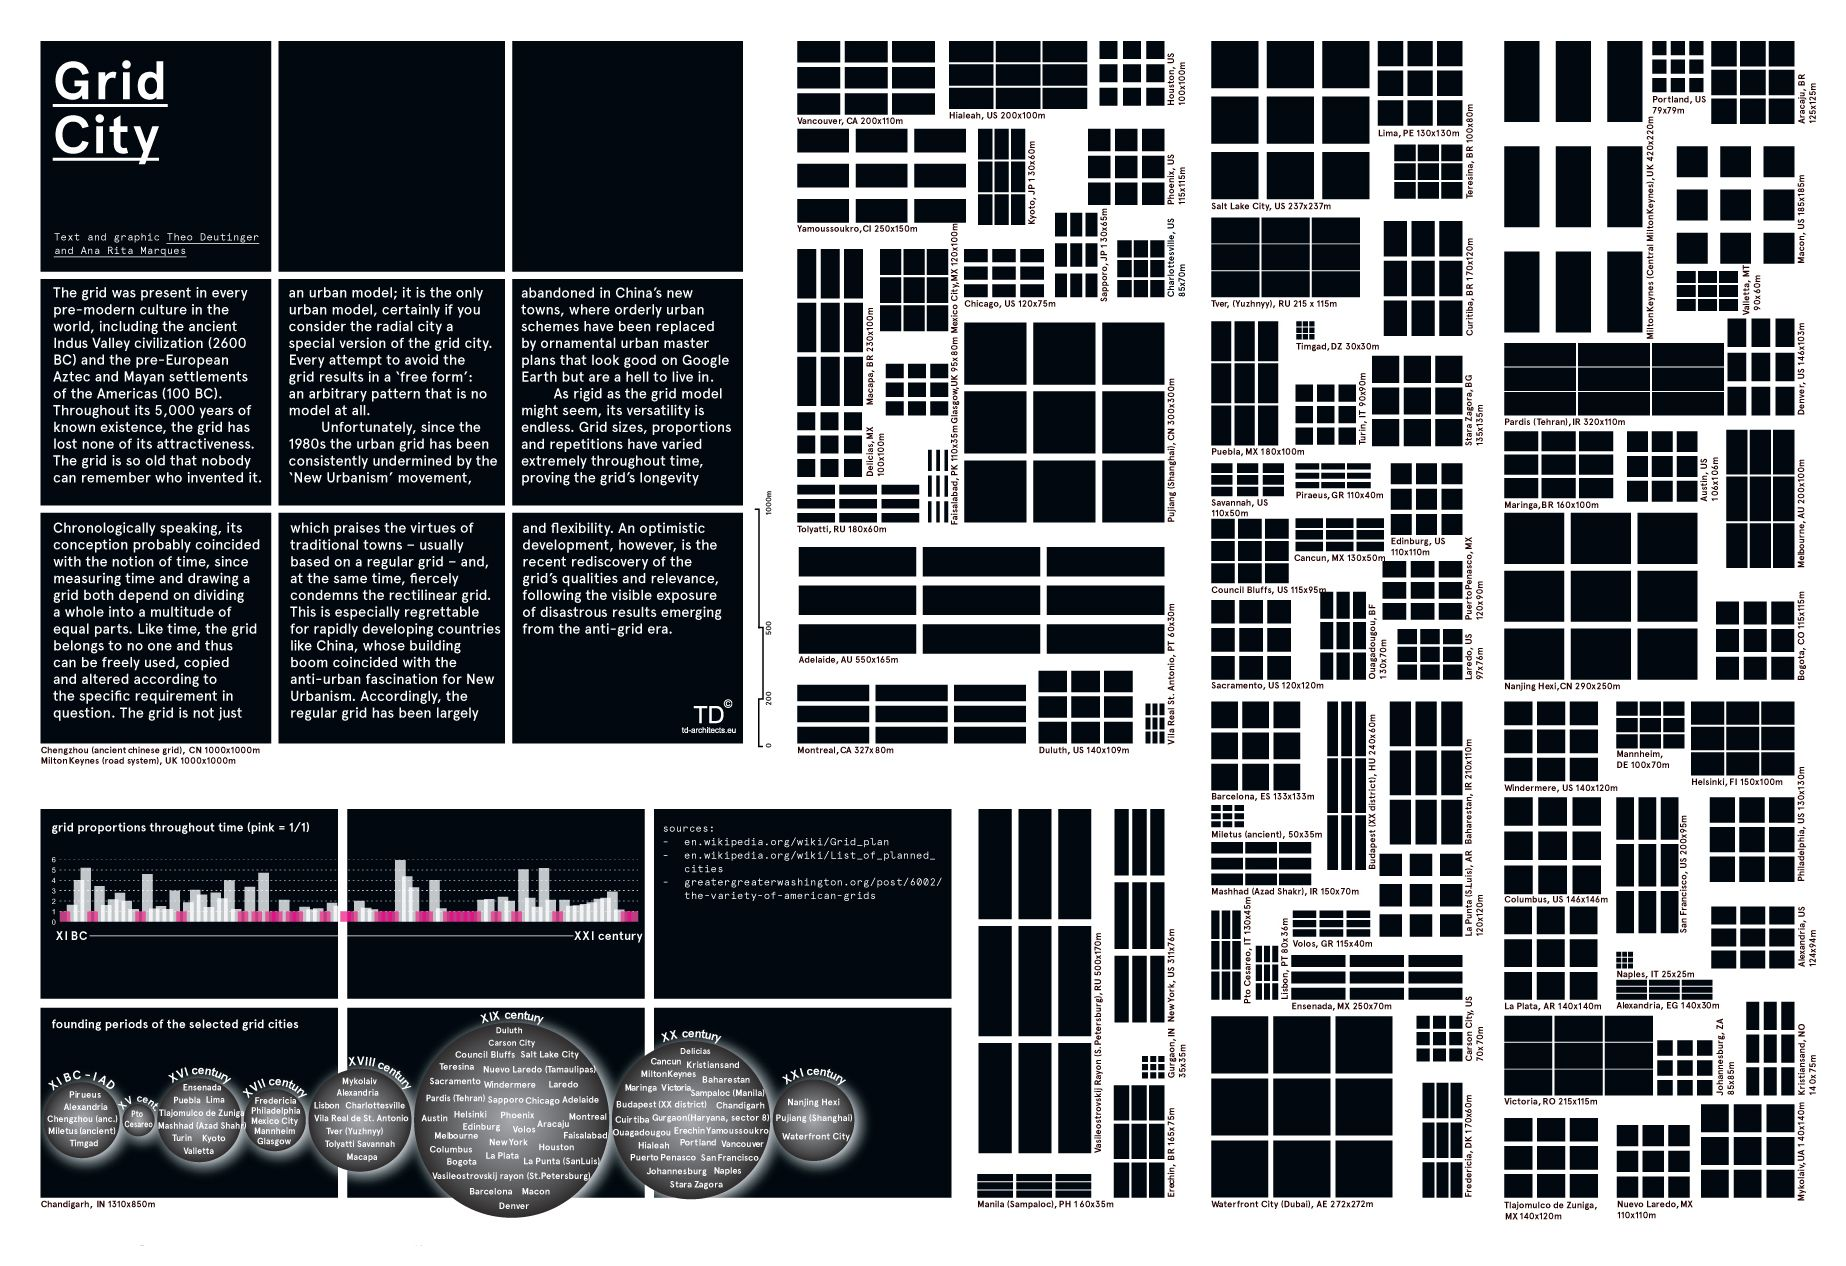 theo deutinger - grid city